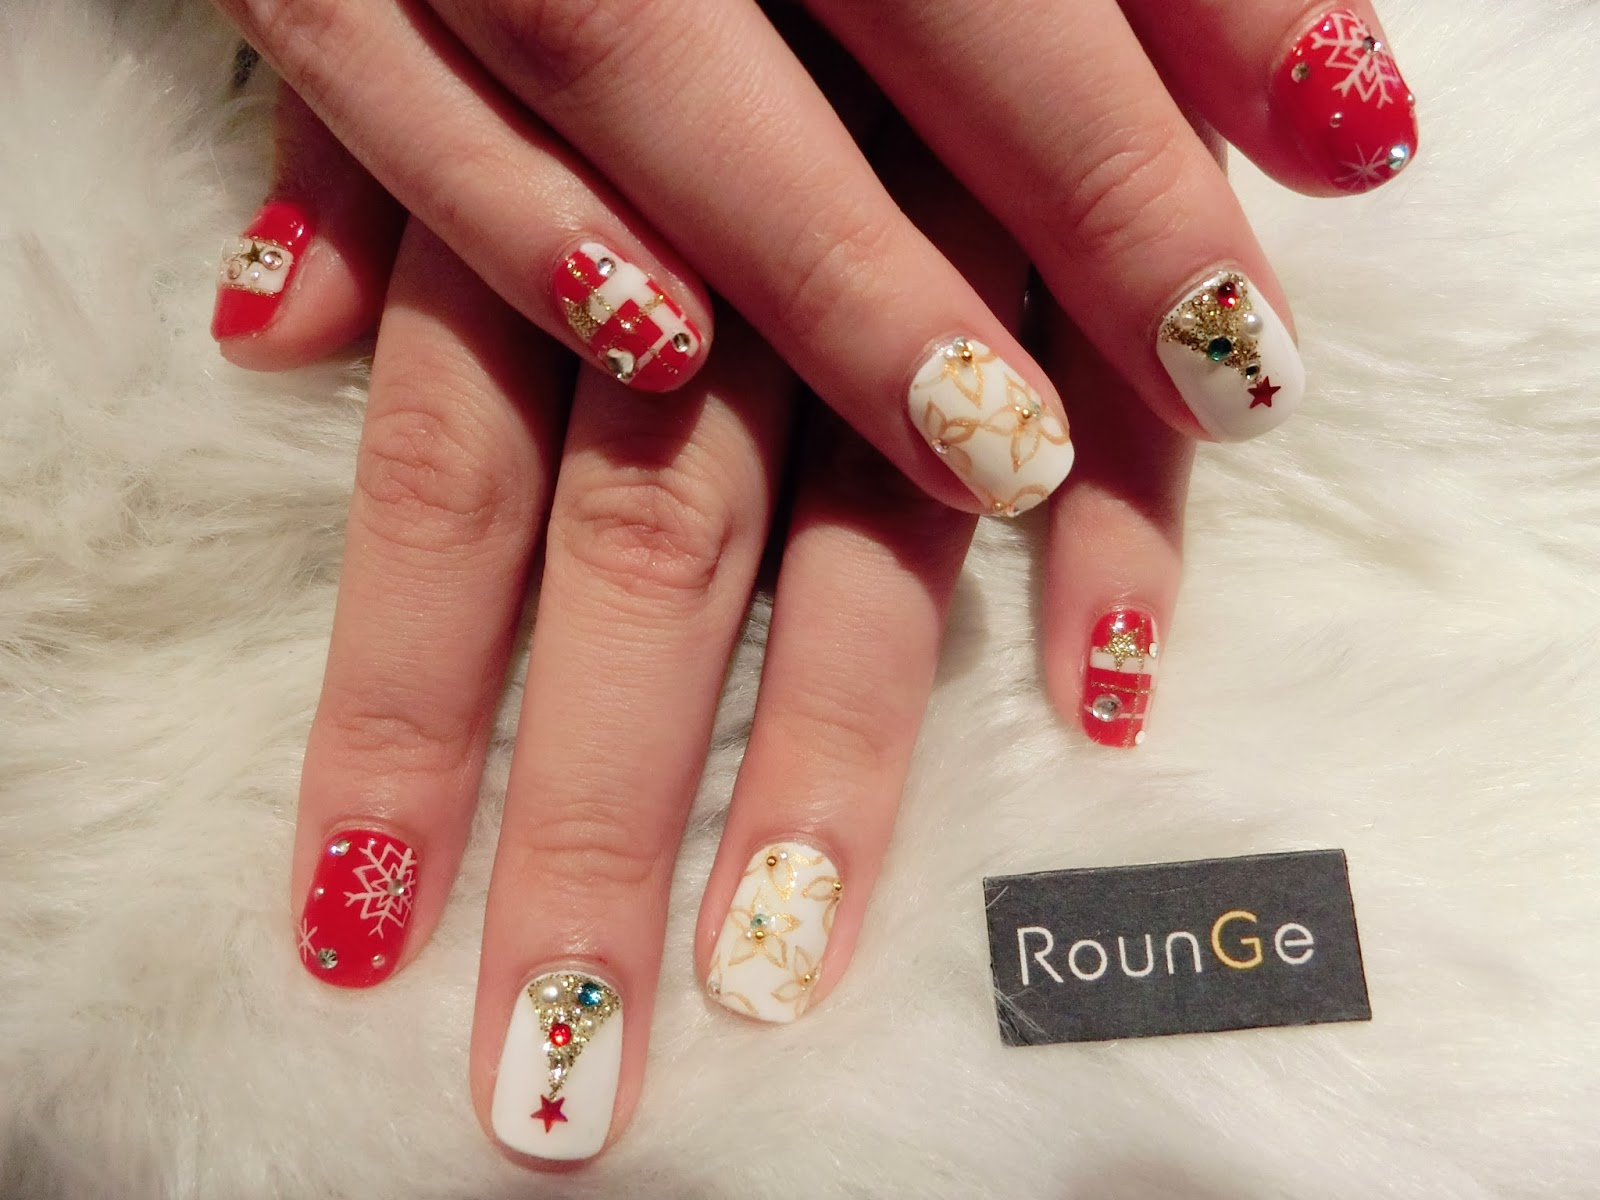 Rounge SGC Nail Salon Tokyo Review - Gel vs Gelish | Award-winning ...